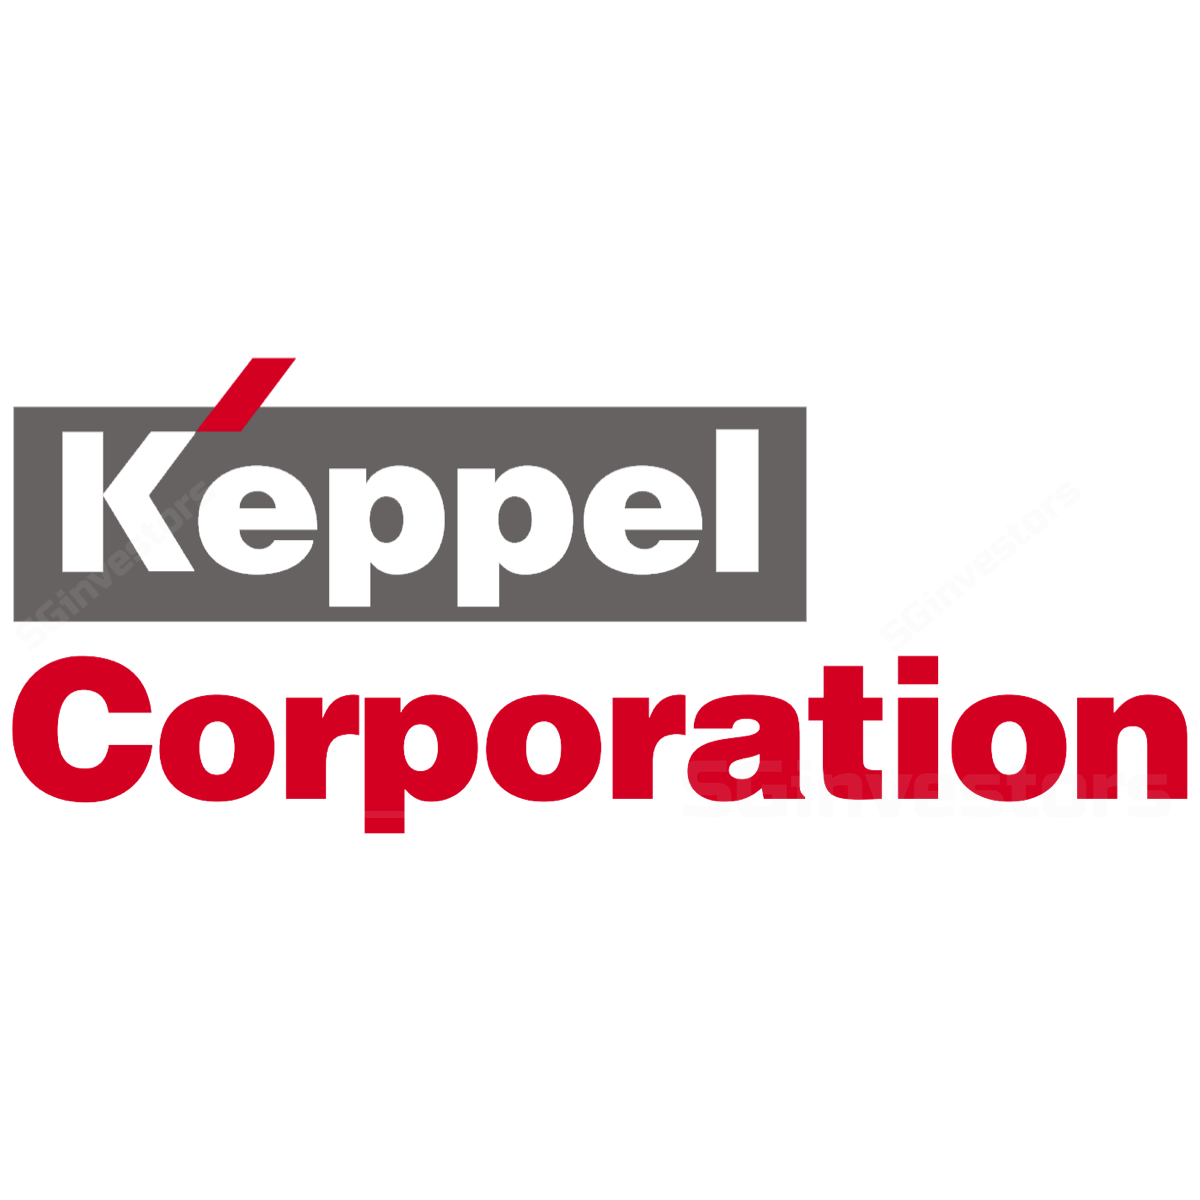 Keppel Corporation - UOB Kay Hian 2018-04-20: 1Q18 Below Expectations; China Property Earnings Facing Downside Risk